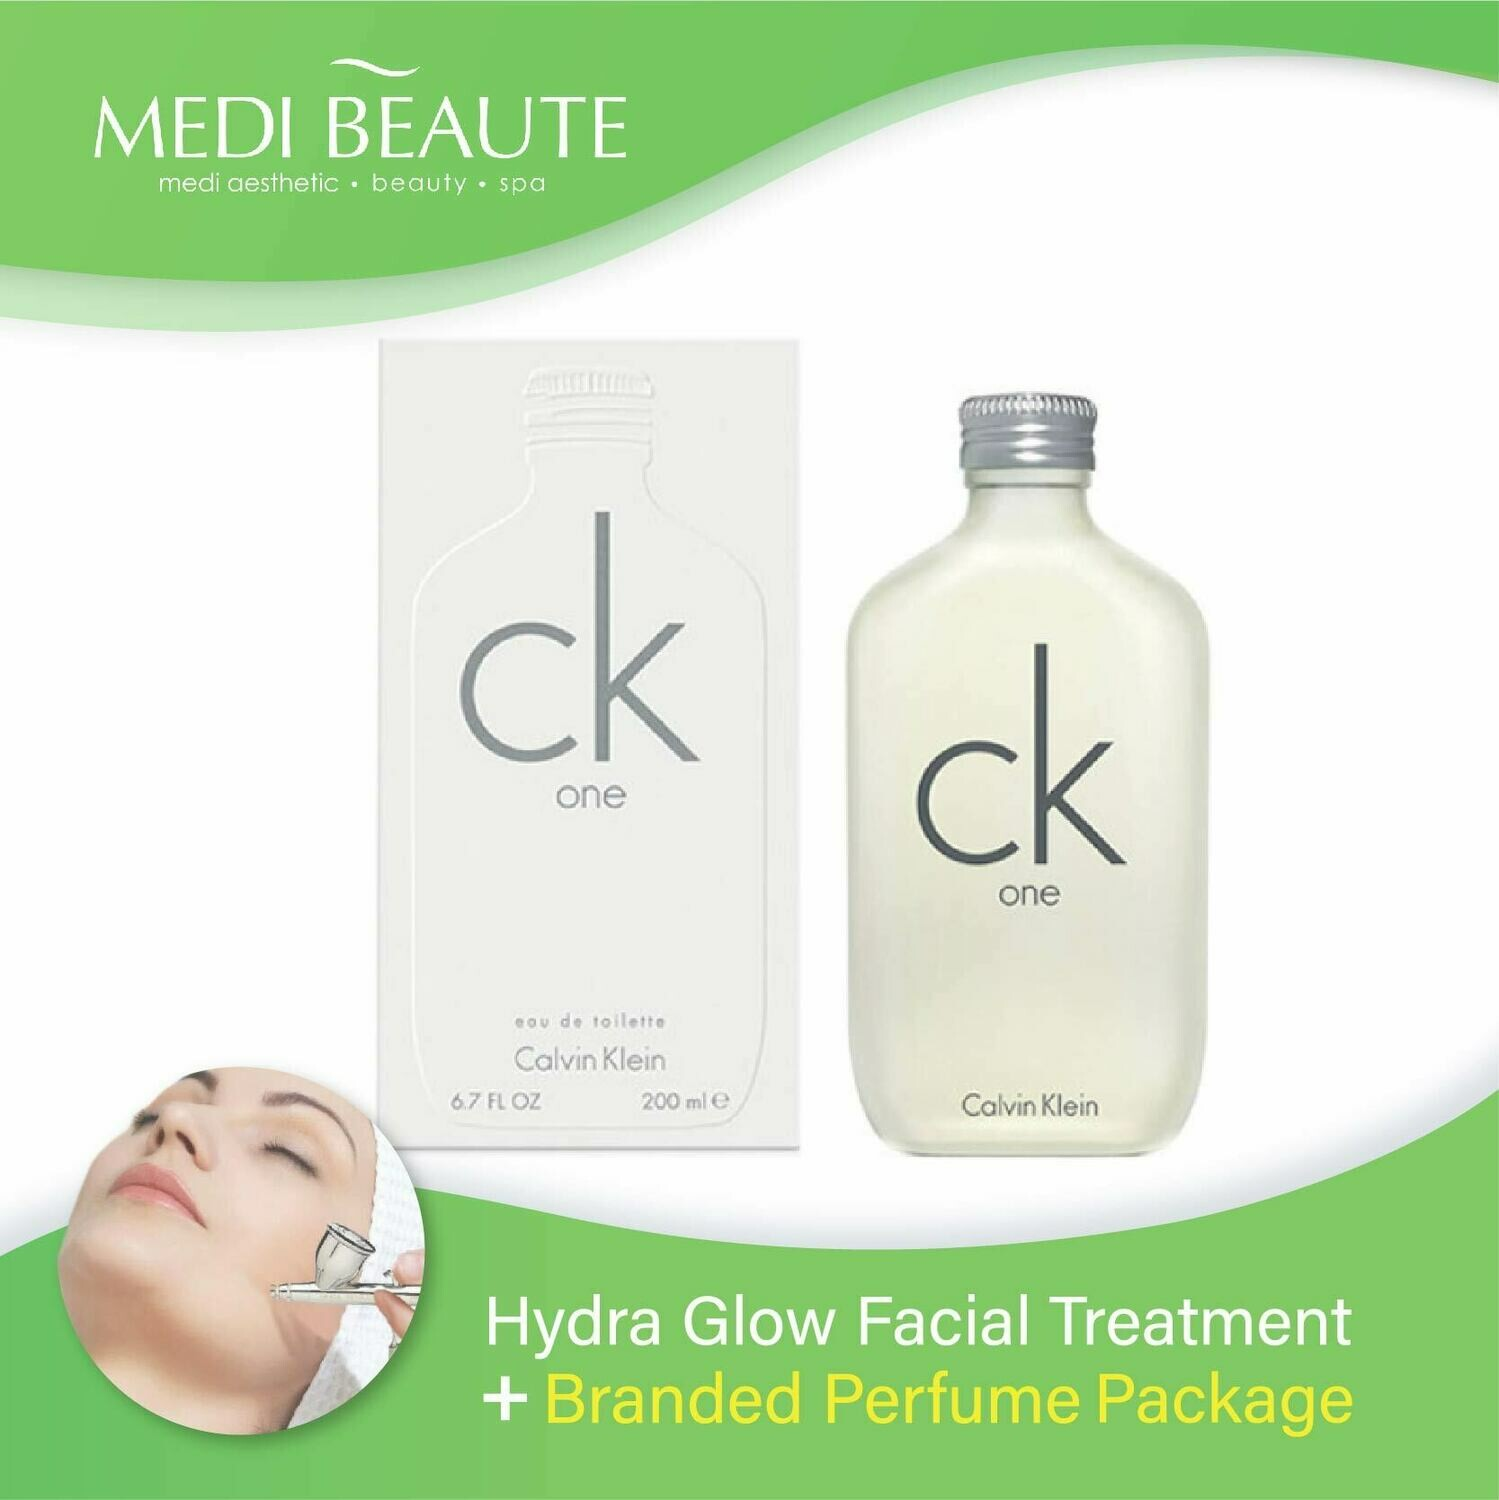 Medi Beaute Hydra Glow Facial + Branded Perfume ( Calvin Klein cK One Unisex EDT 200ml) Package